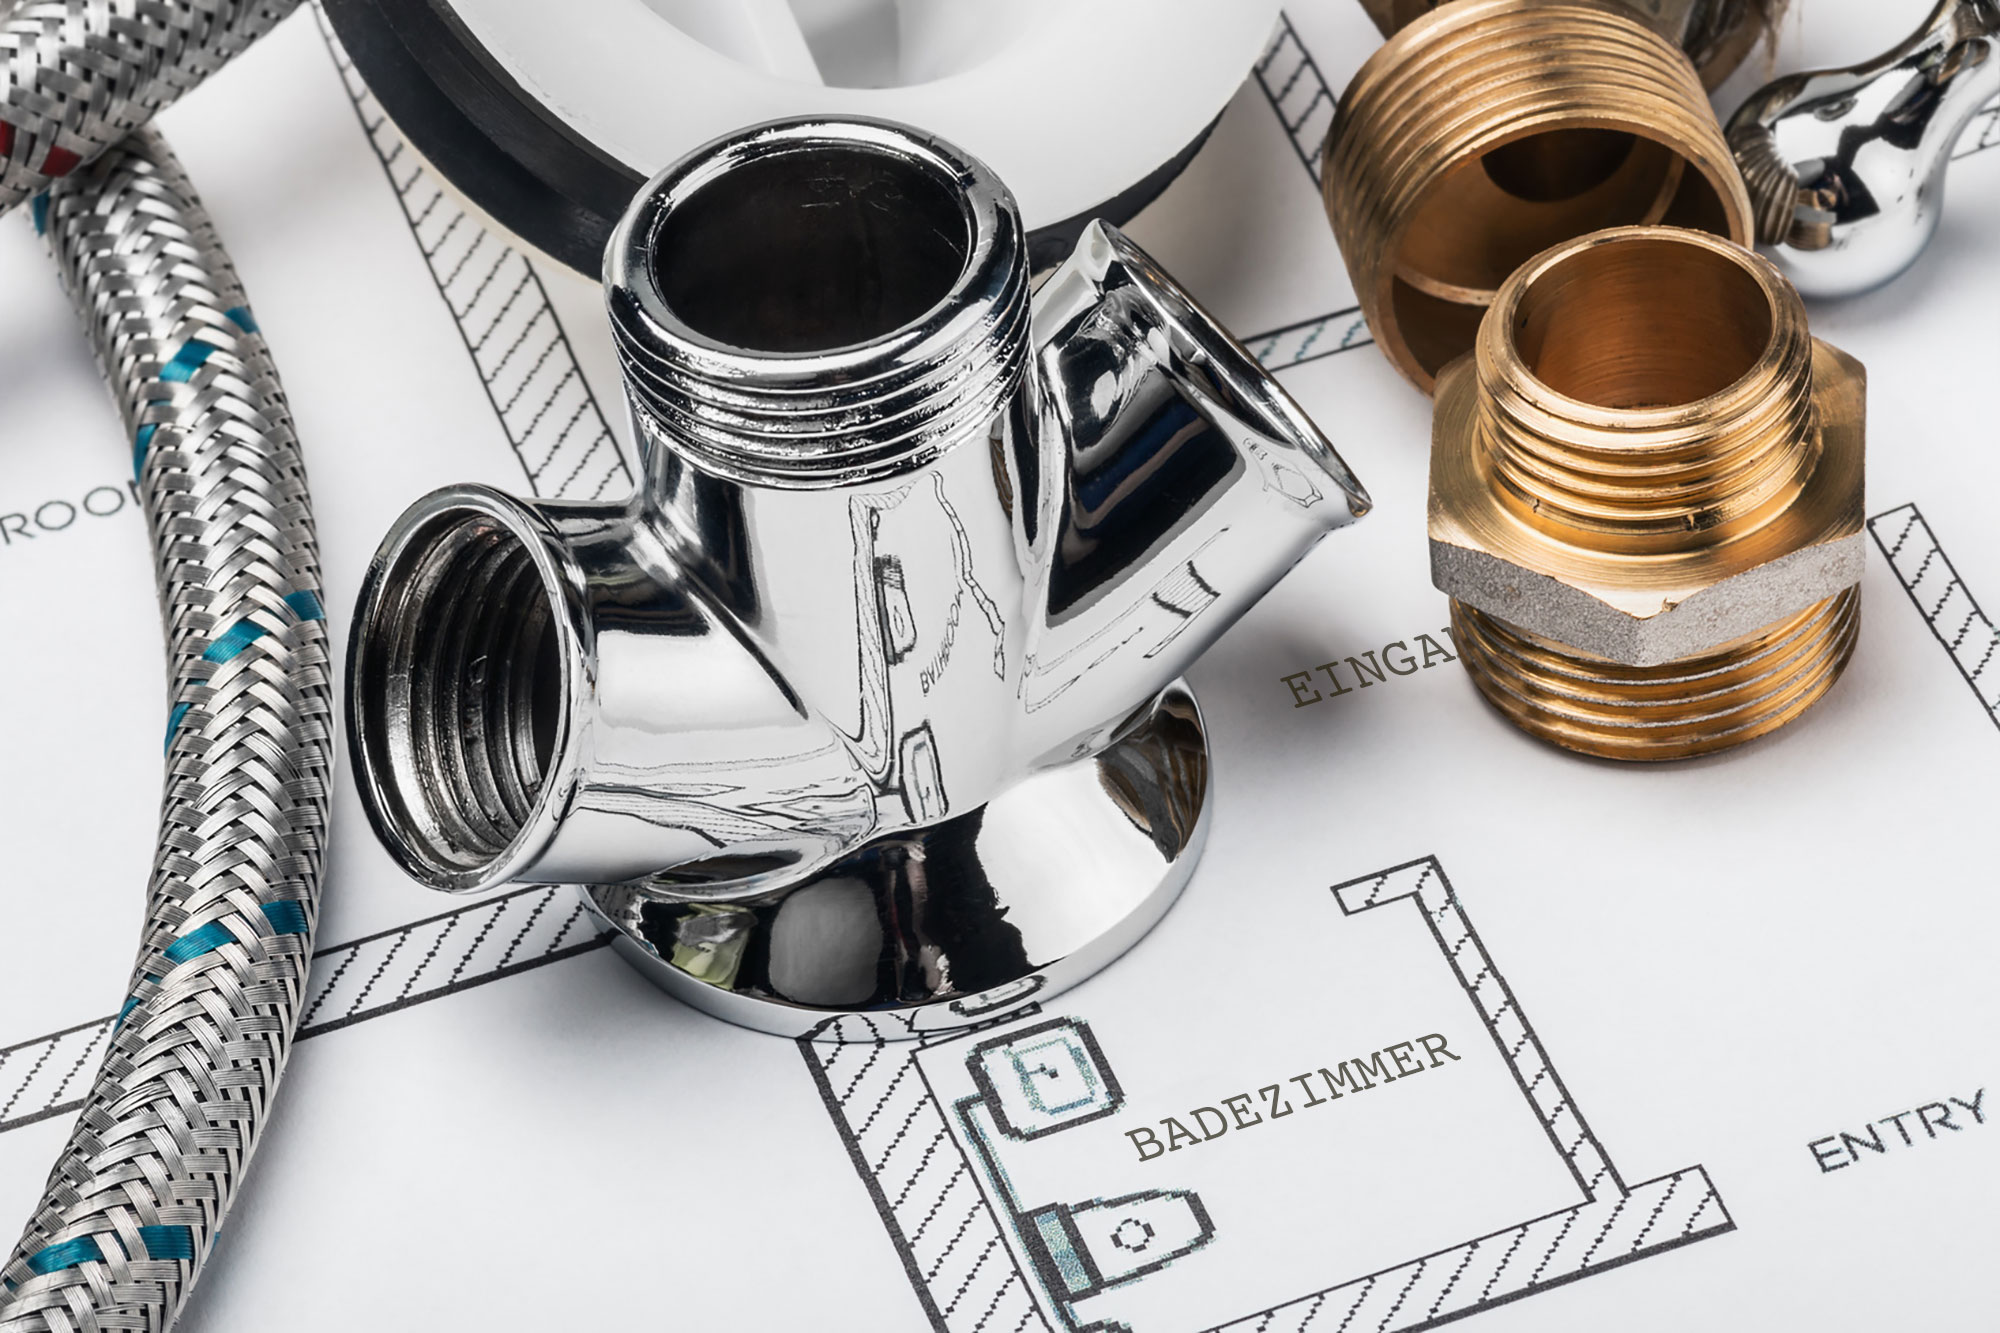 Courses in Plumbing Can Provide You a Bright Career